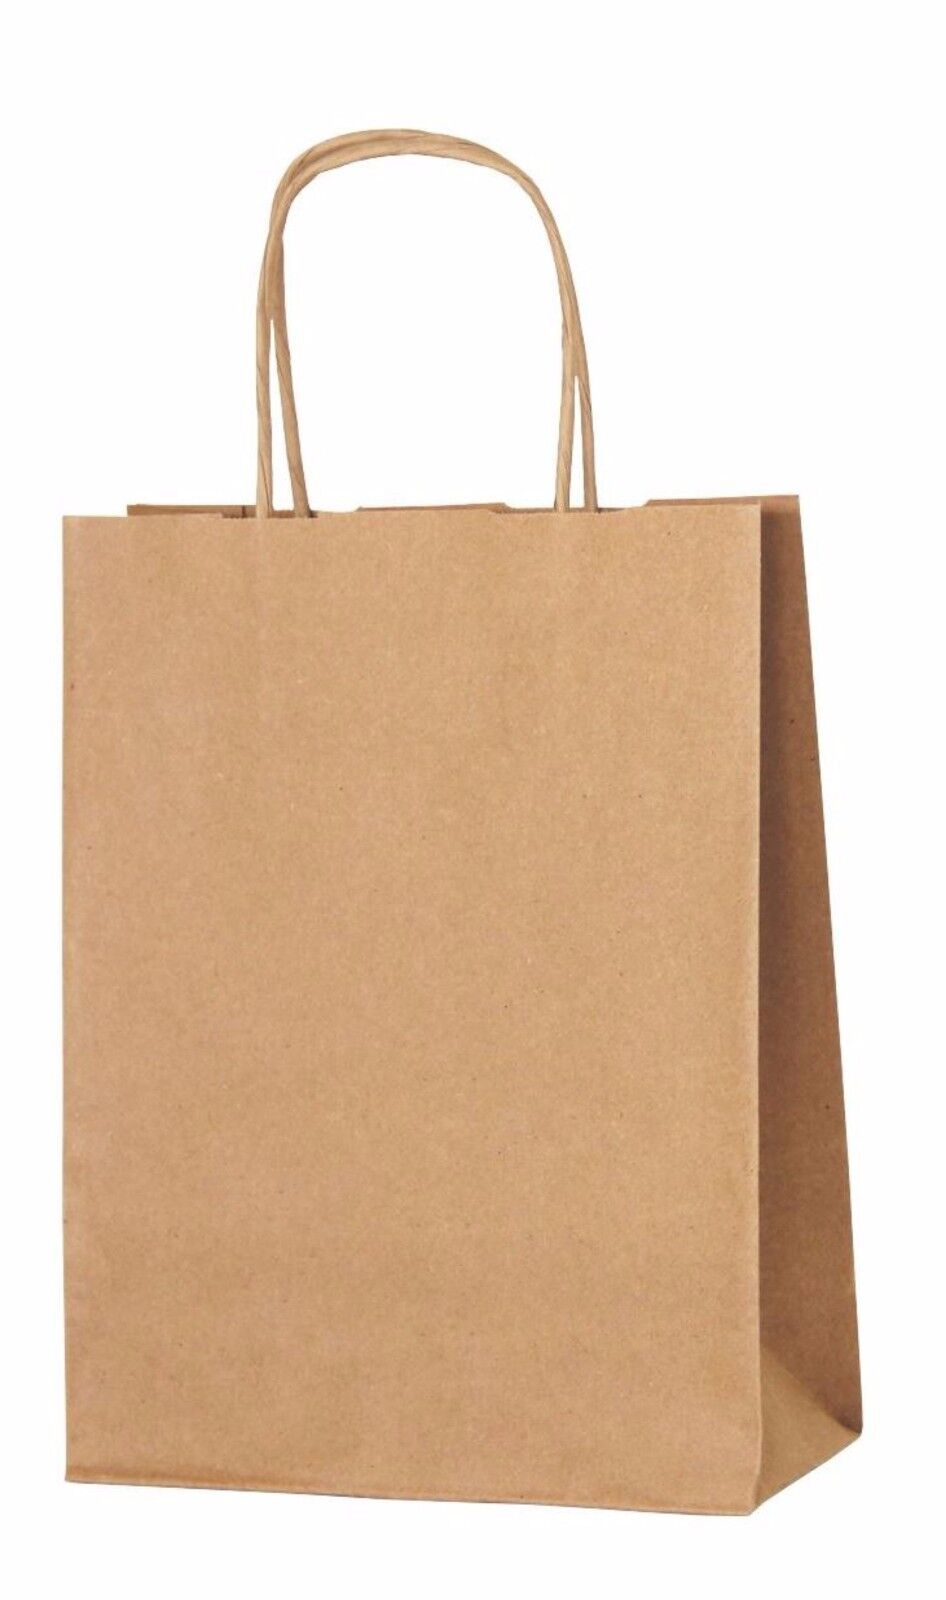 Bright Paper Party Bags Gift Bag With Handles